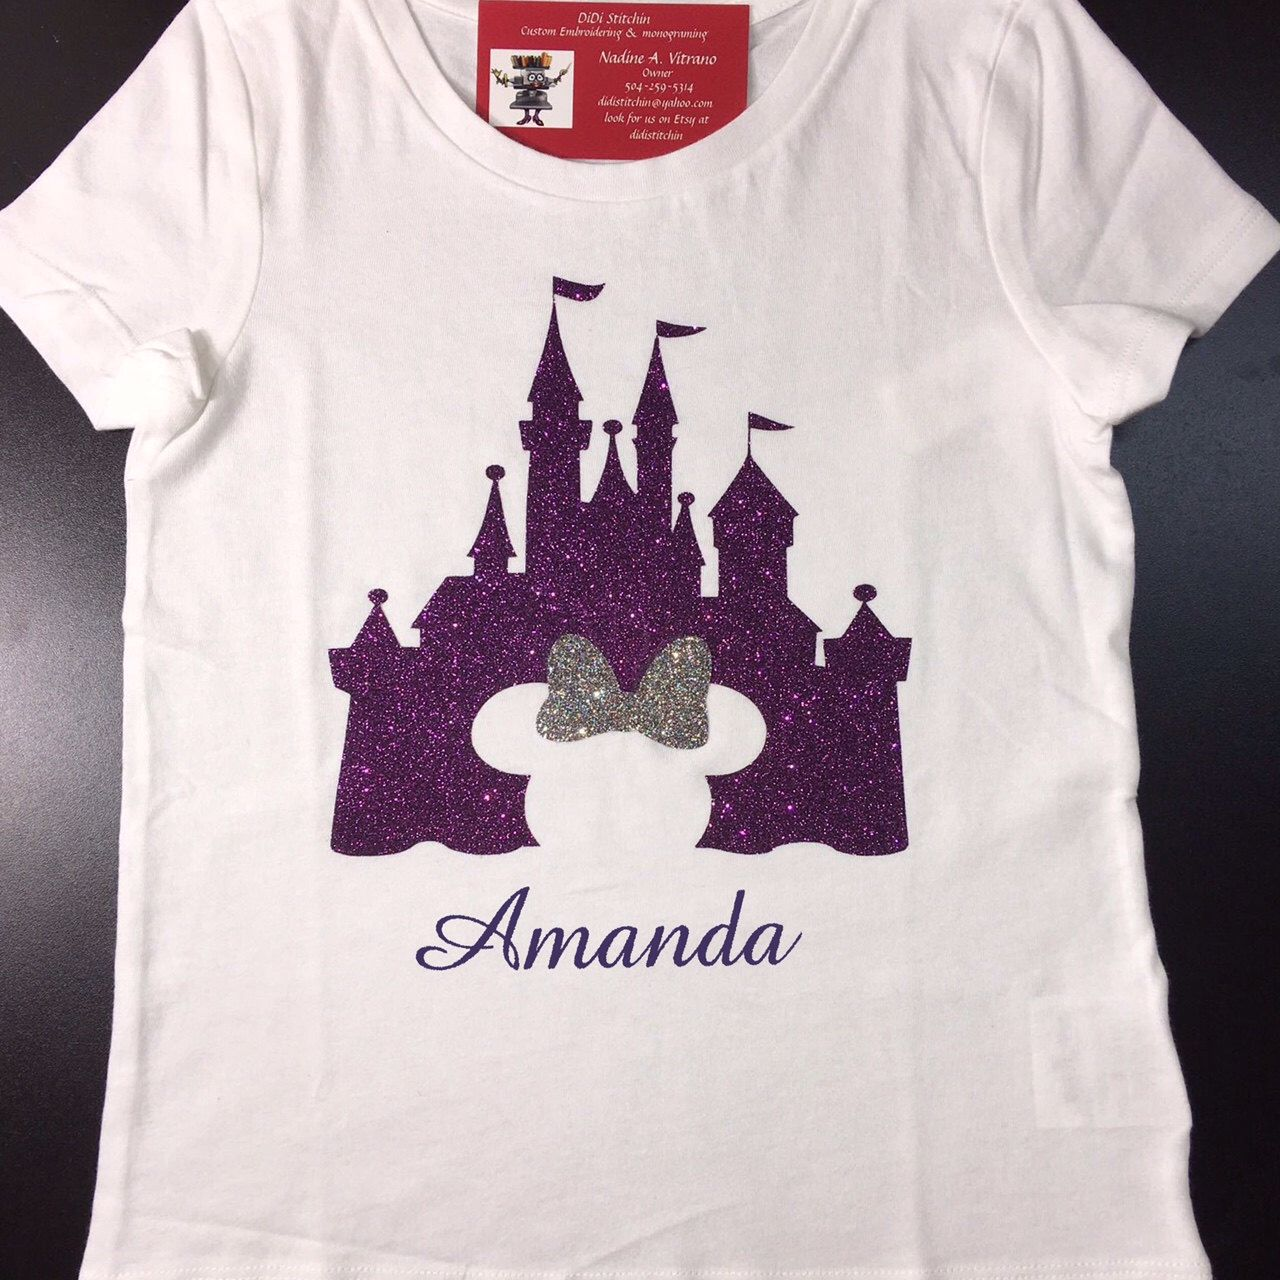 An adorable shirt for the family's Disney Vacation! I'm going to Disney  World